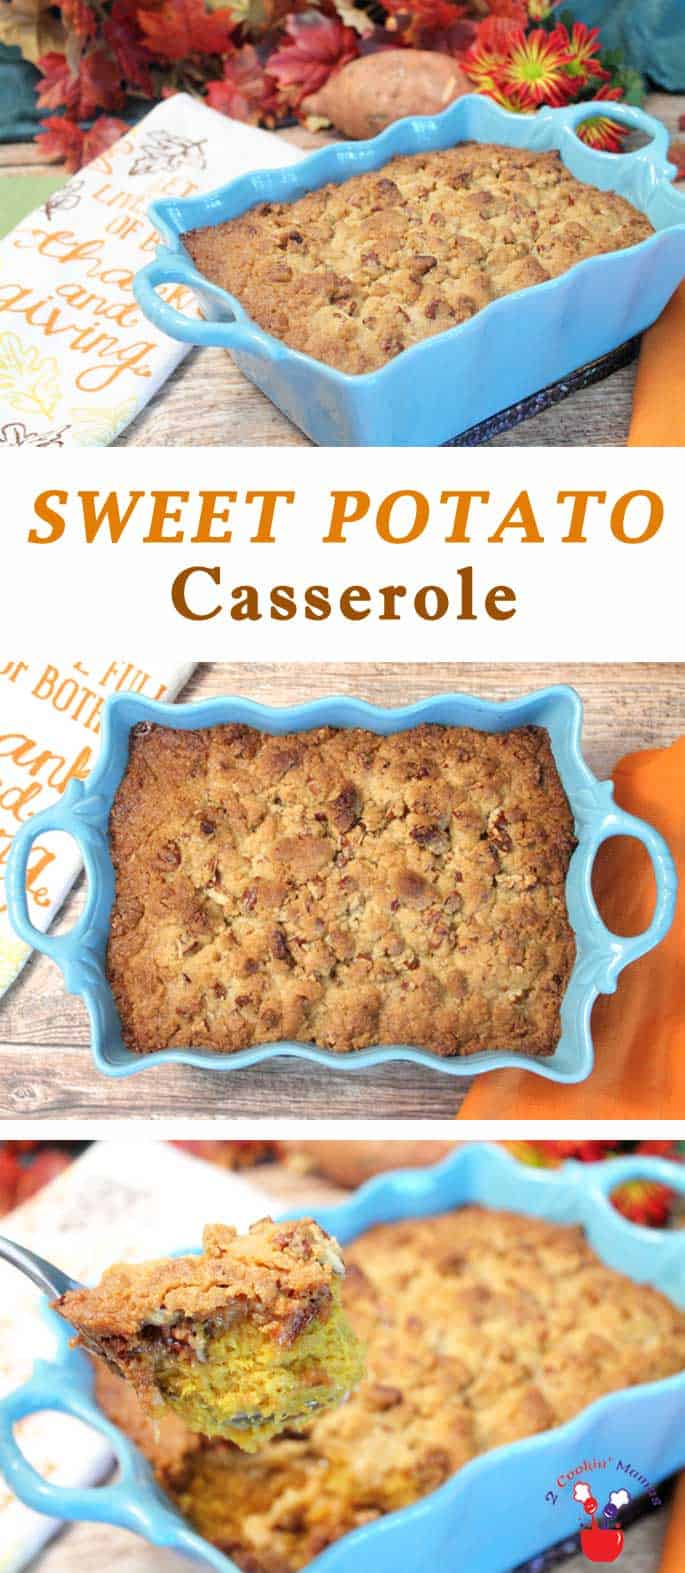 Sweet Potato Casserole main | 2 Cookin Mamas Our Sweet Potato Casserole is our most popular dish at Thanksgiving! Creamy, cinnamony and oh so sweet and topped with plenty of crunchy crumbs, it's like having dessert with your dinner. Once you have it, you'll never want to do without it again! #recipe